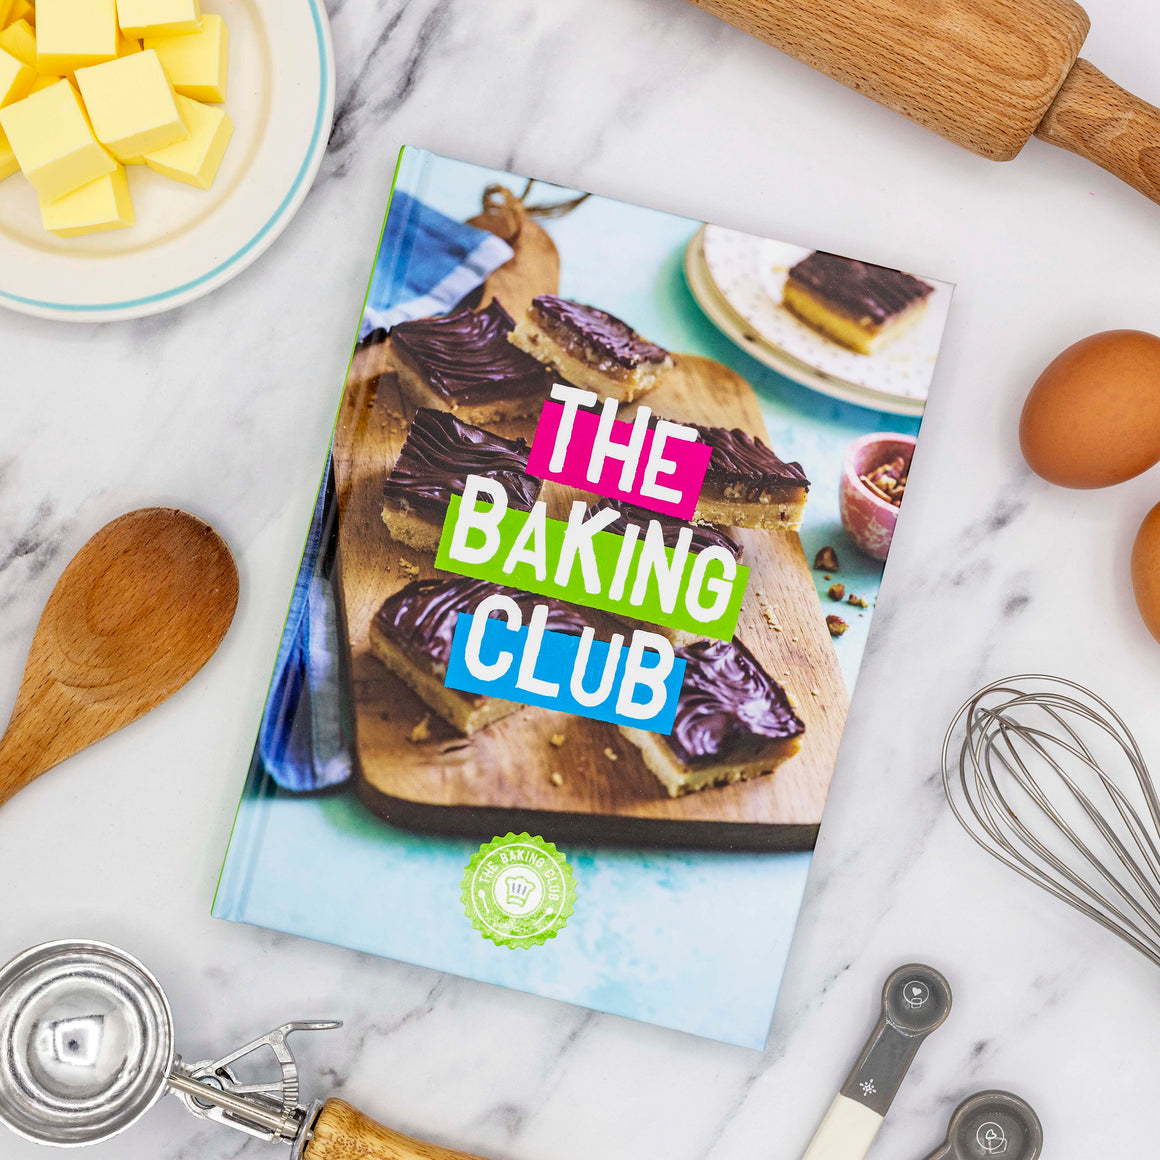 The Baking Club by Bakedin - Recipe Book